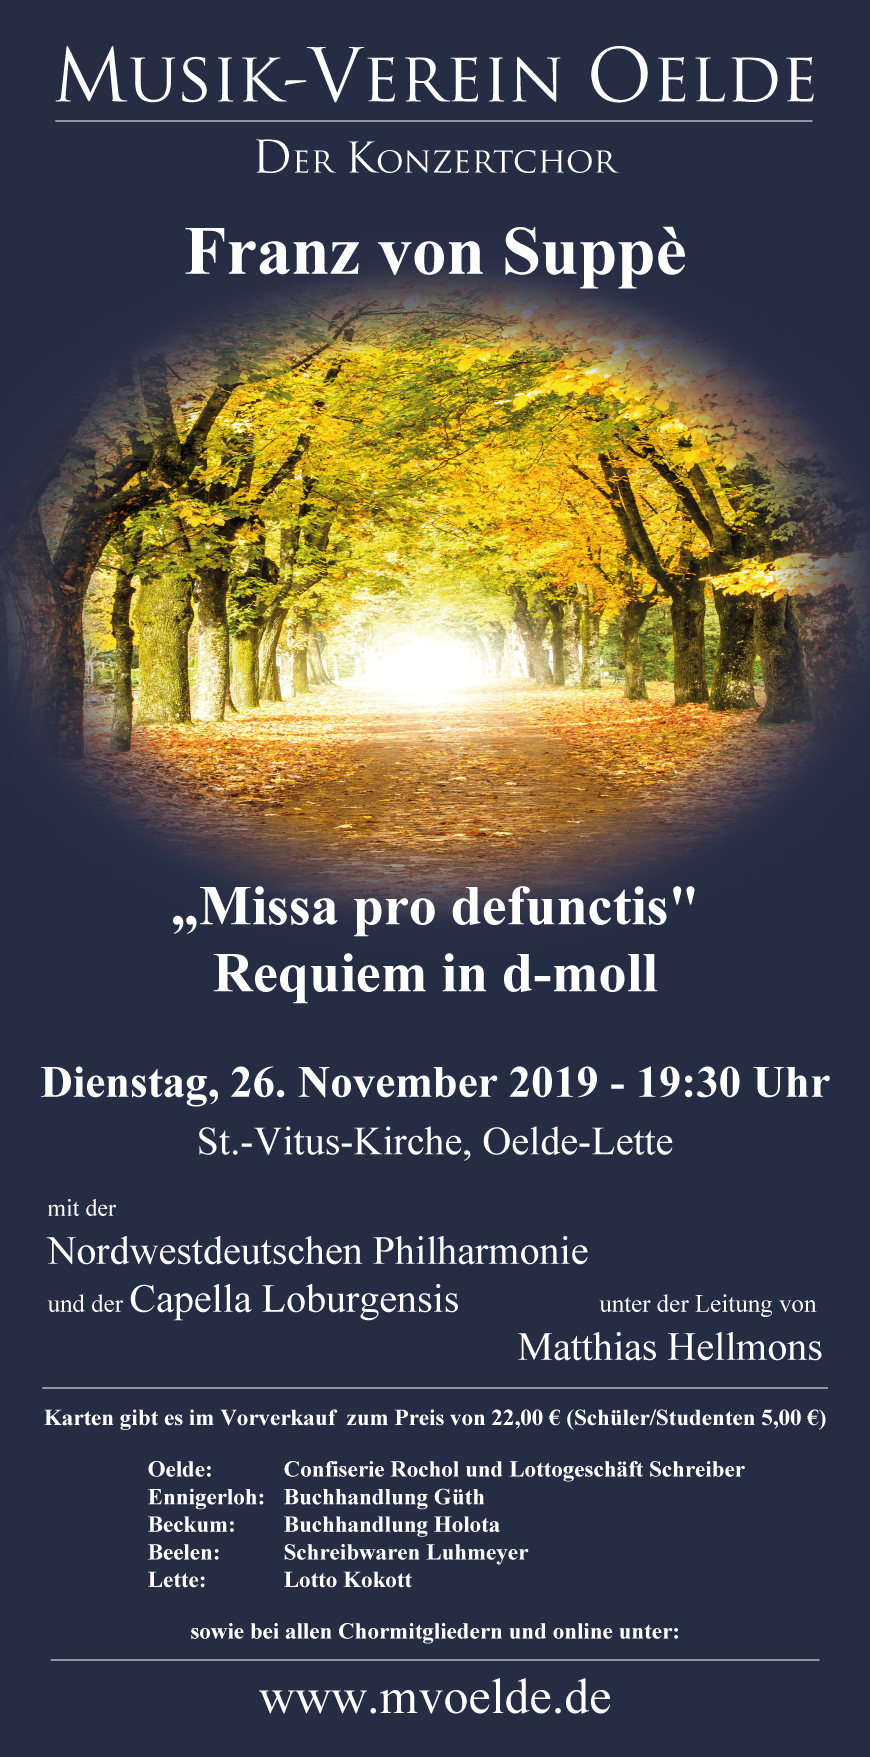 MVO Flyer Plakat 2019 Herbst Version 3.0 Final